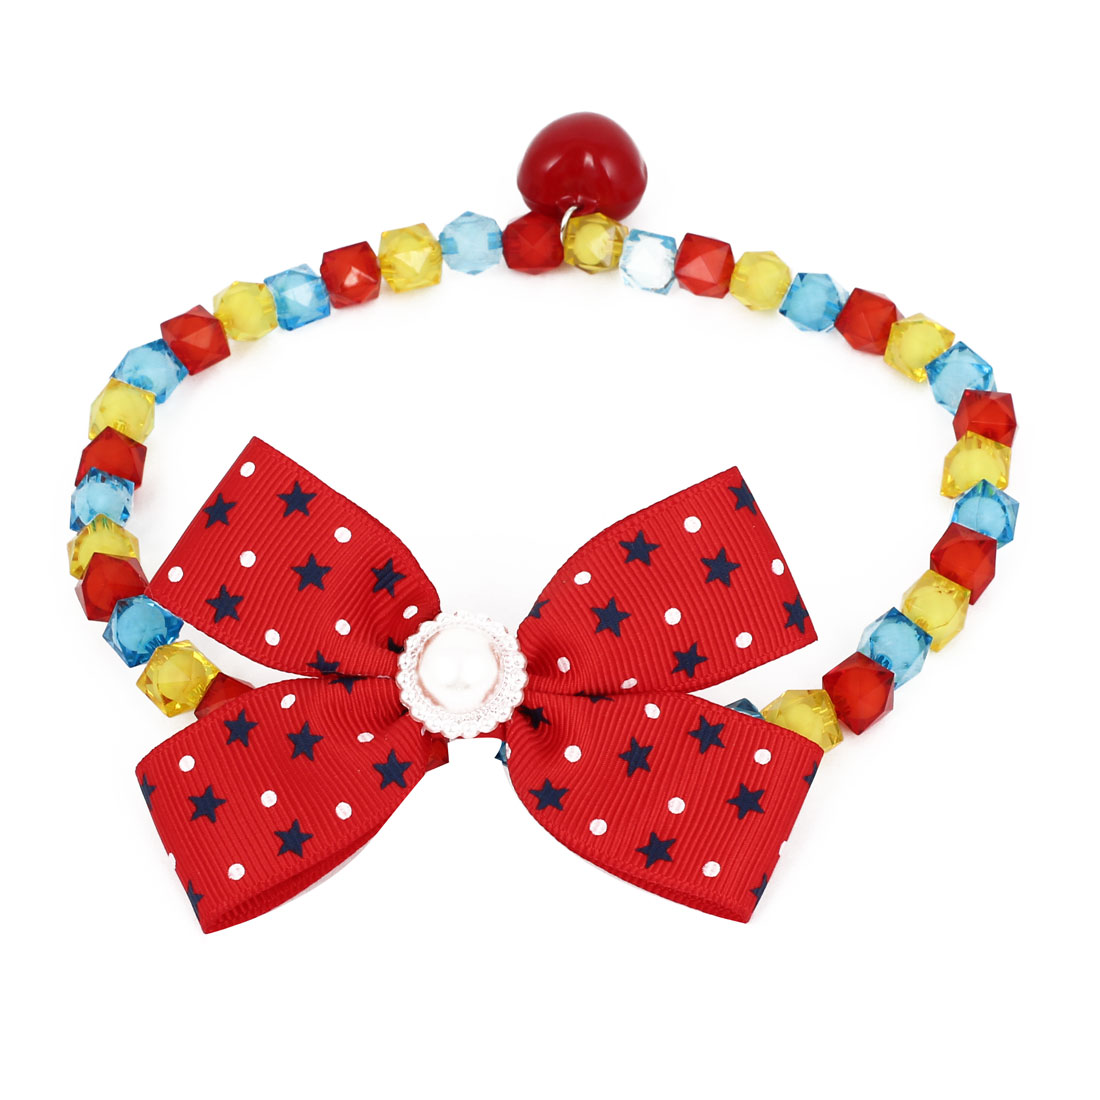 Metal Bell Pendant Bowtie Accent Pet Dog Plastic Faceted Beads Collar Necklace Multi Color S